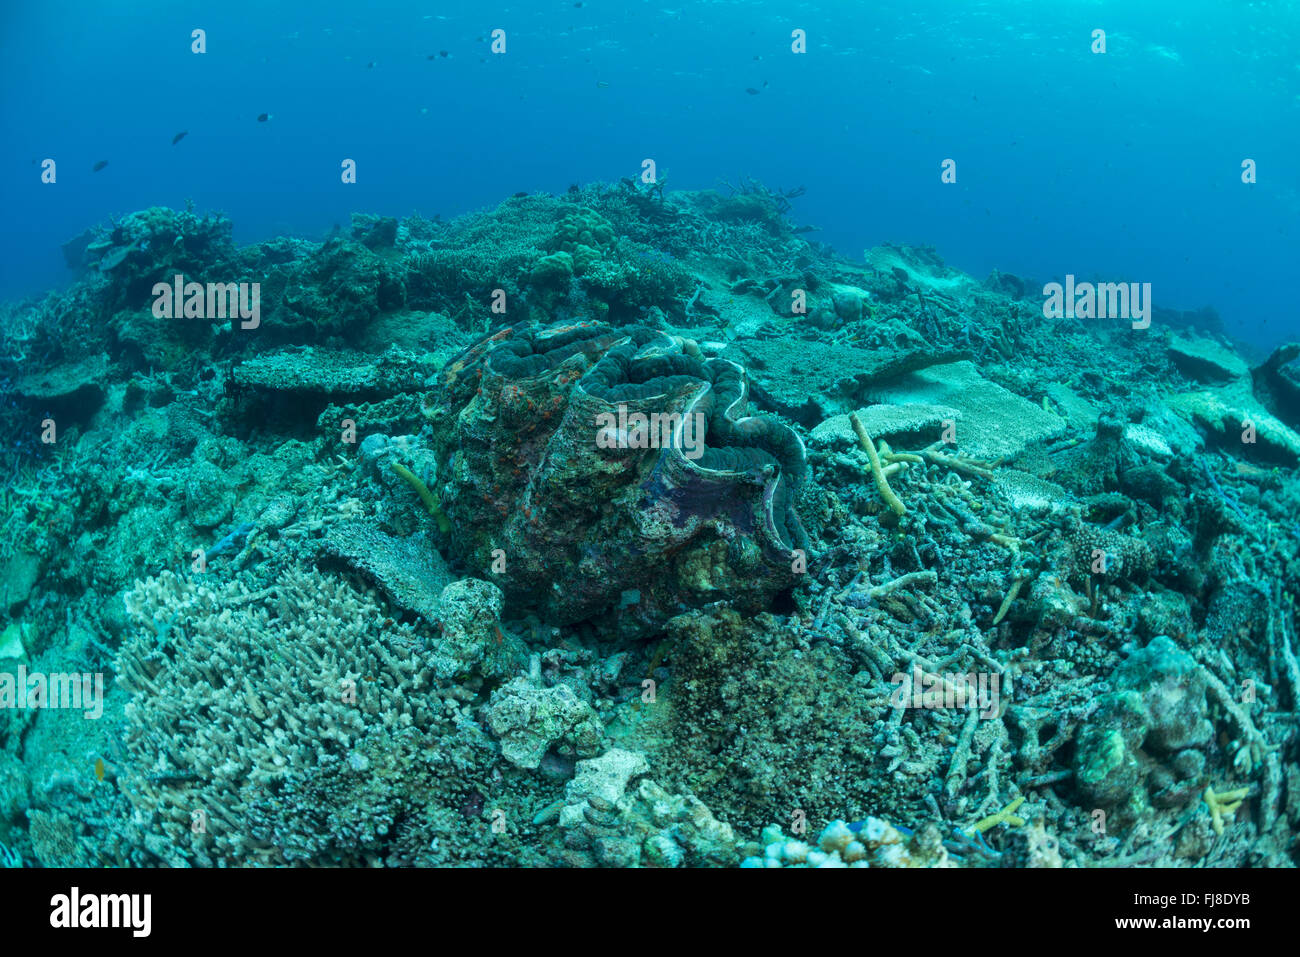 Cyclone damaged reef with living giant clam (Tridacna gigas). Stock Photo